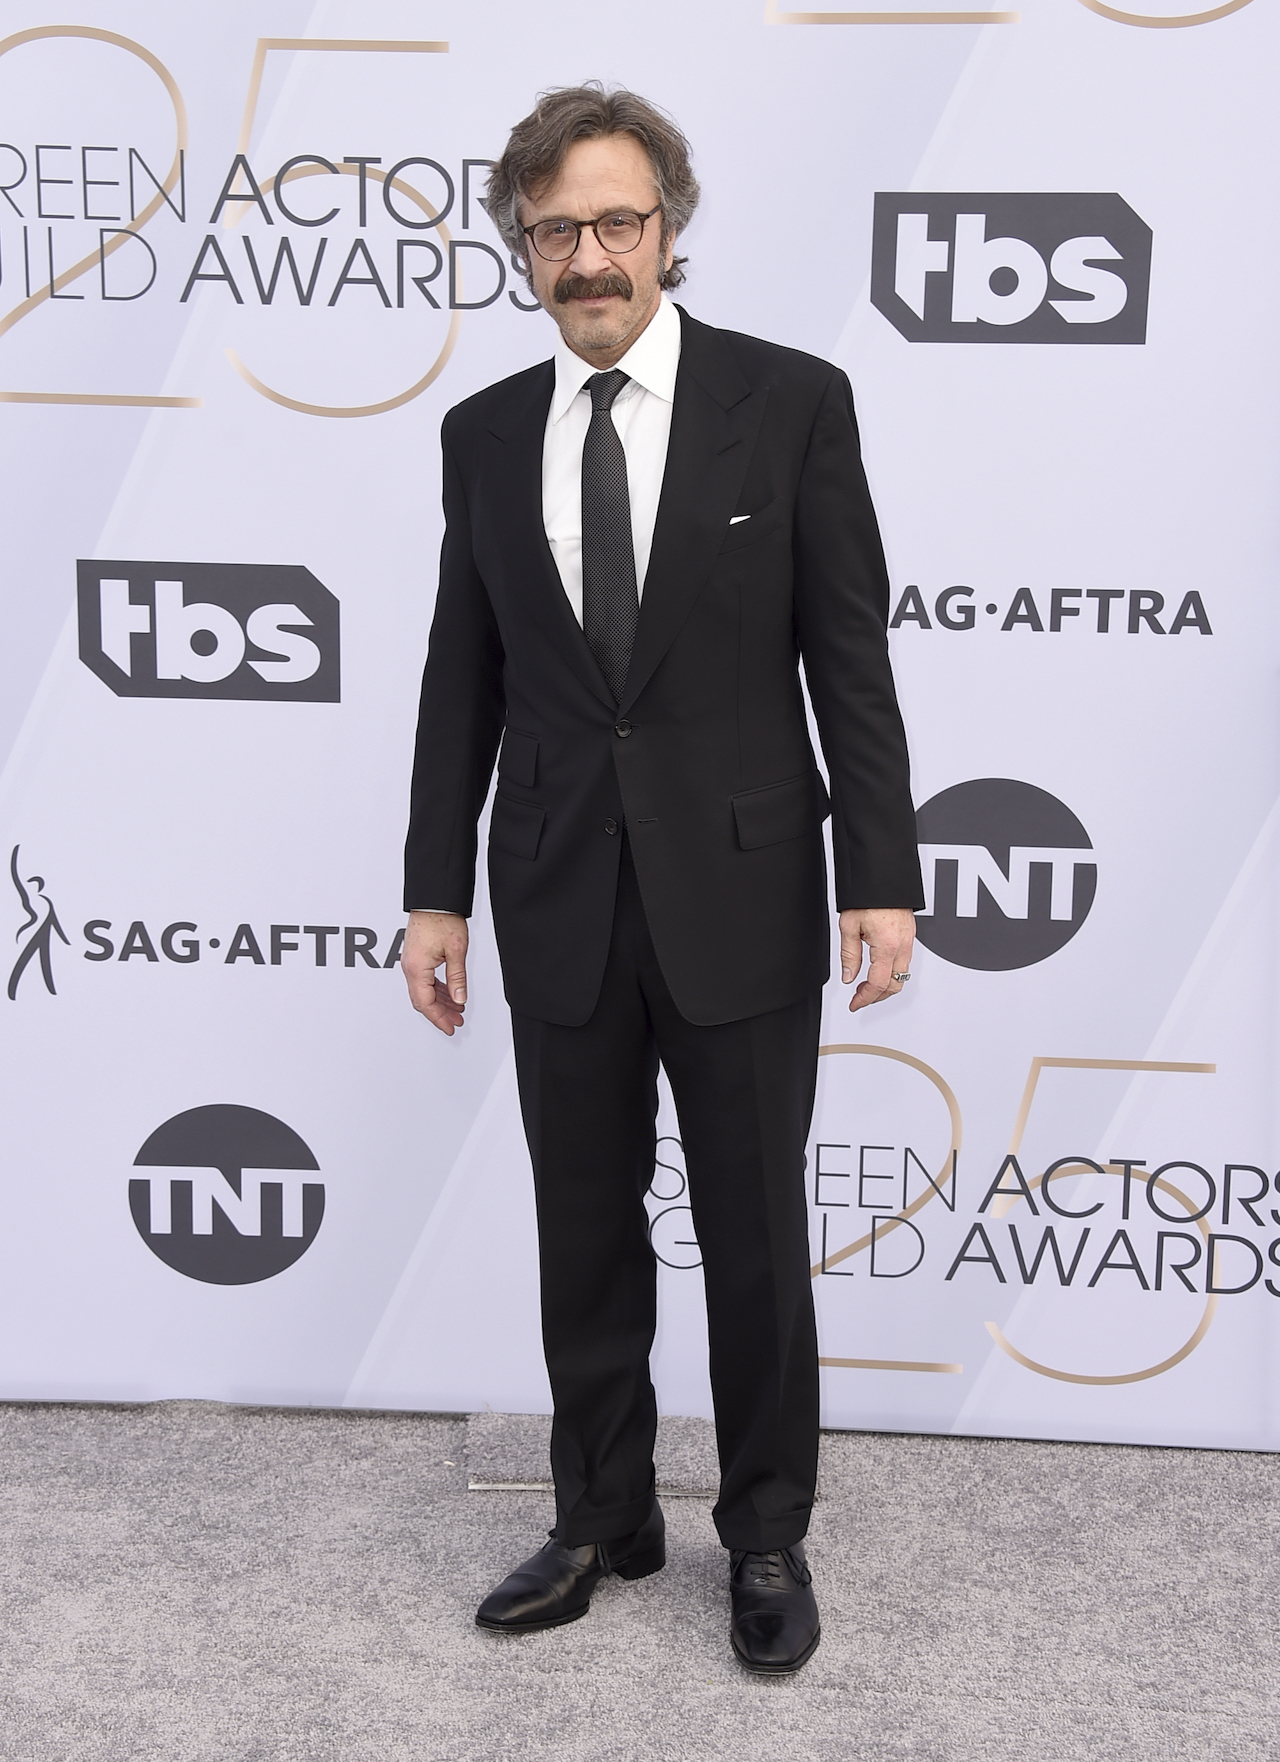 "<div class=""meta image-caption""><div class=""origin-logo origin-image ap""><span>AP</span></div><span class=""caption-text"">Marc Maron arrives at the 25th annual Screen Actors Guild Awards at the Shrine Auditorium & Expo Hall on Sunday, Jan. 27, 2019, in Los Angeles. (Jordan Strauss/Invision/AP)</span></div>"